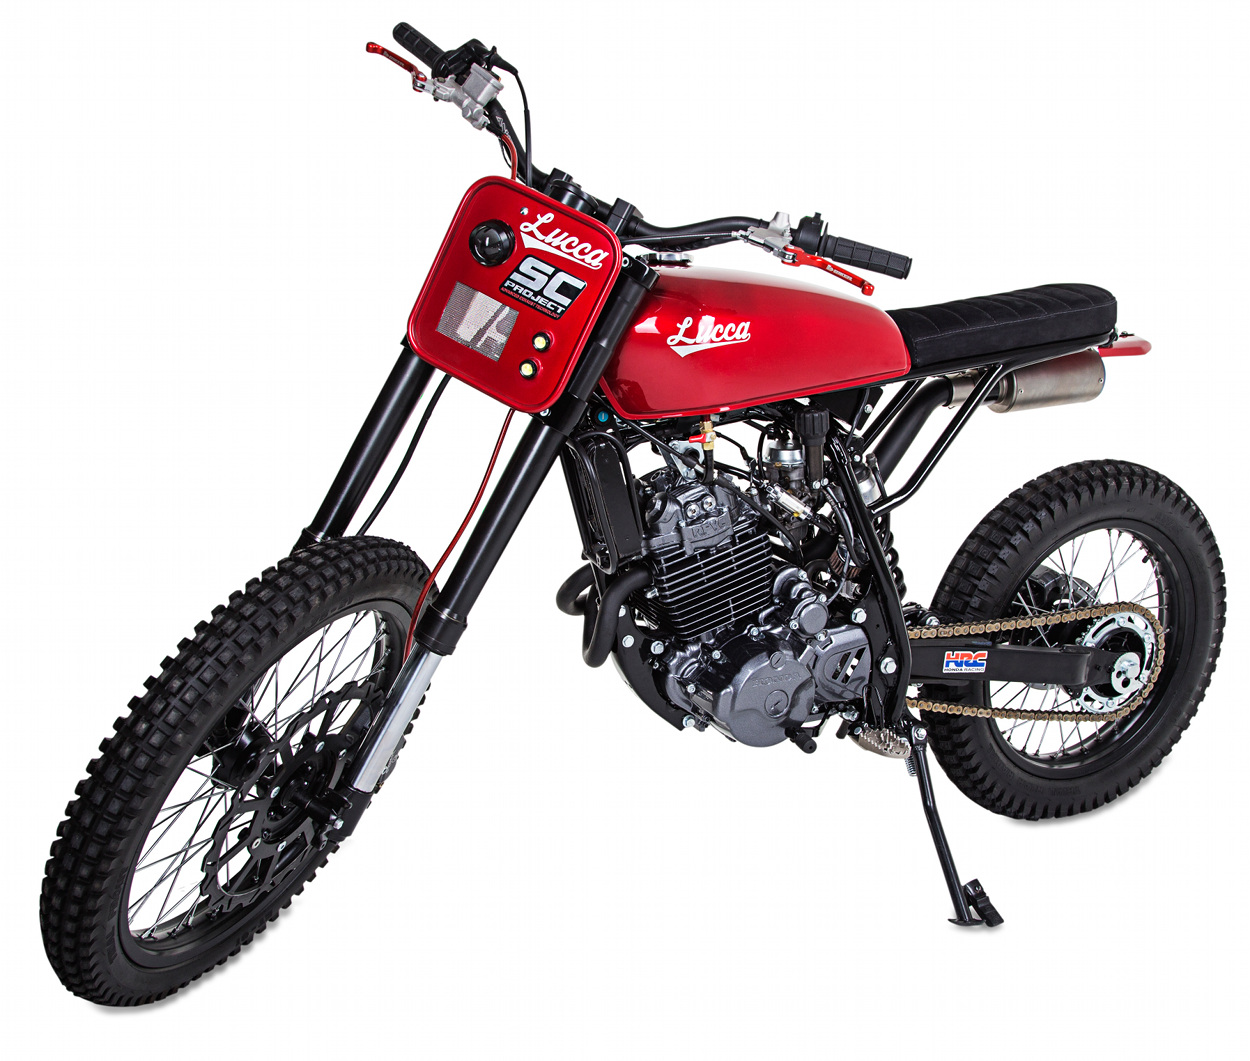 hight resolution of honda nx350 scrambler by lucca customs x wolf motorcycles